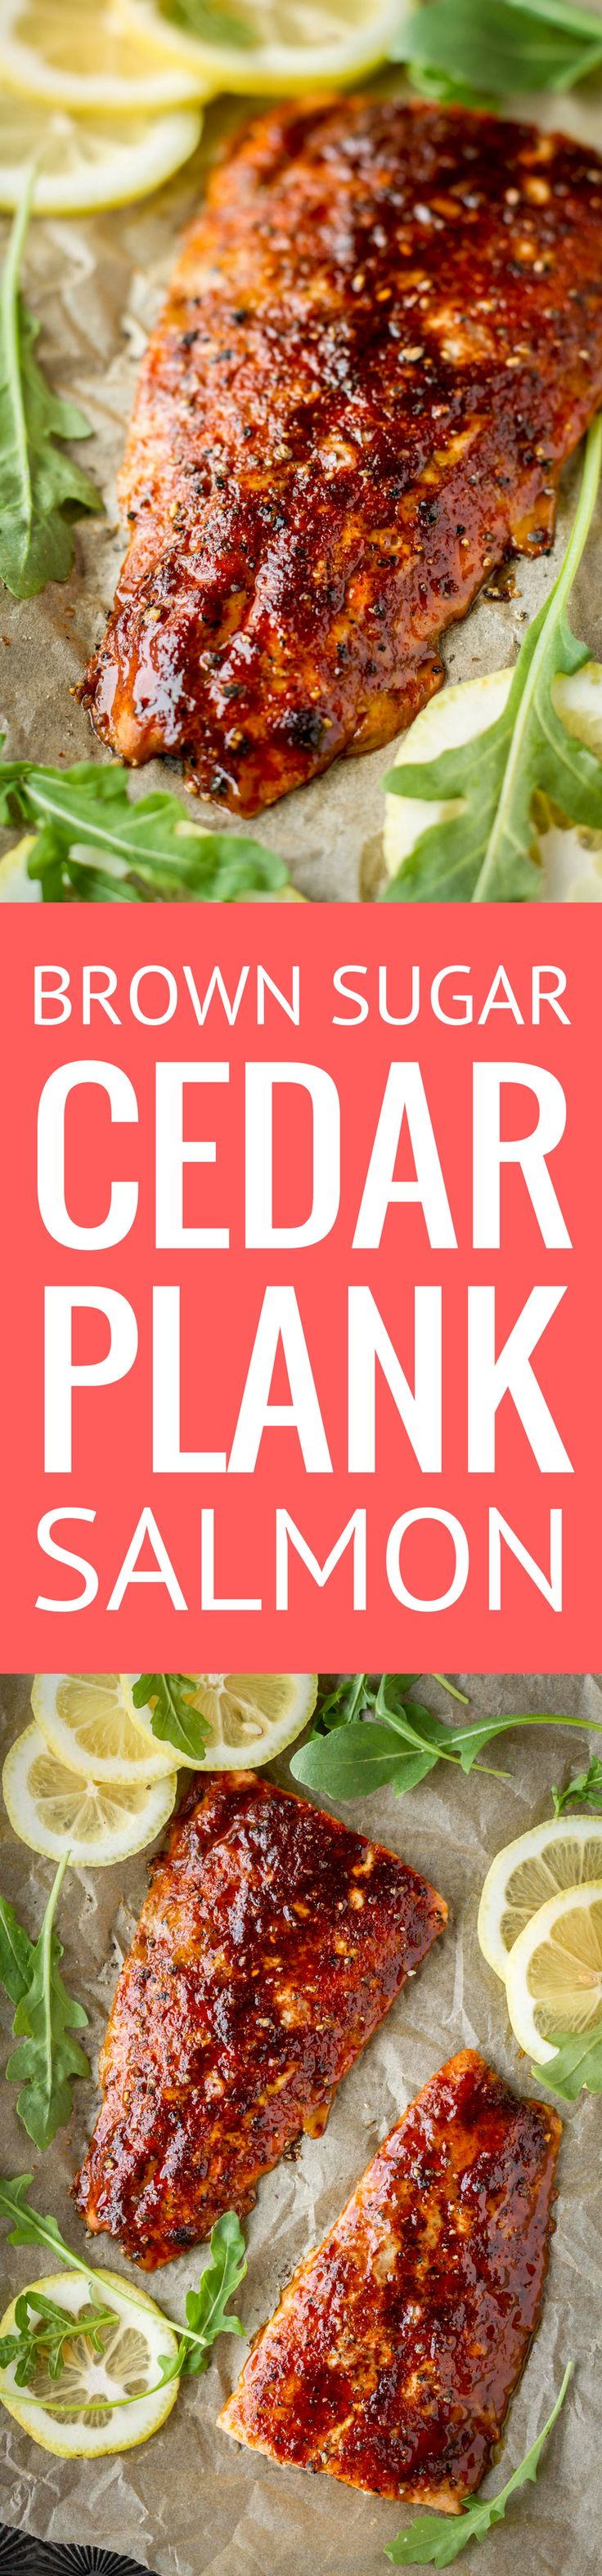 ad: Sweet & Smoky Grilled Cedar Plank Salmon -- this cedar plank salmon is one of the easiest salmon recipes I've made! It gets its sweet and smoky flavor from a delicious rub of brown sugar, smoked paprika, salt, and fresh ground pepper… #AskForAlaska #IC | grilled cedar plank salmon | brown sugar cedar plank salmon | cedar plank salmon rub | grilled salmon recipe | find the recipe on unsophisticook.com